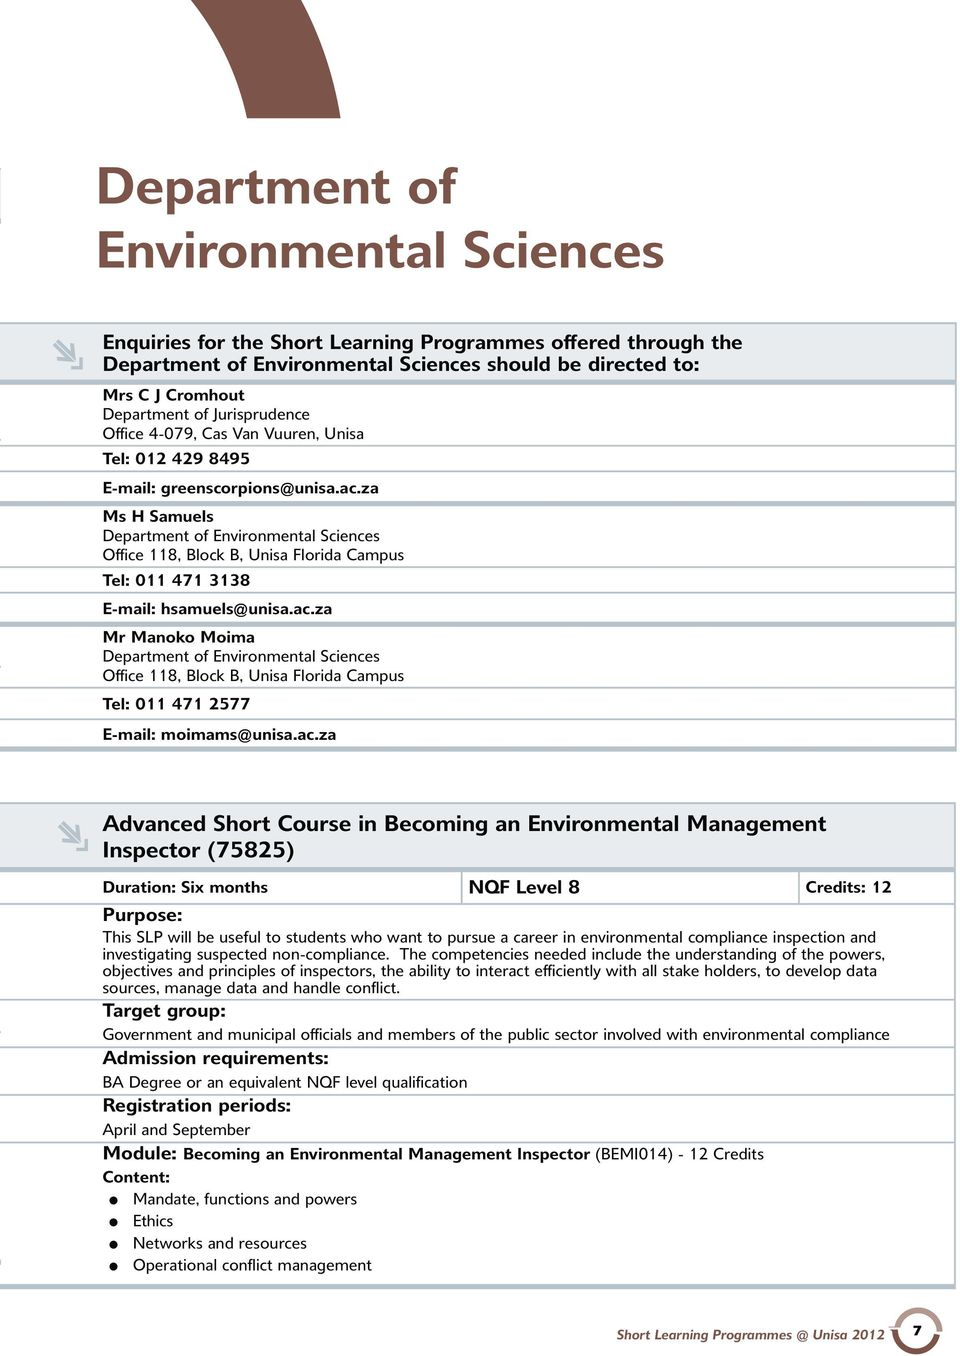 za Ms H Samuels Department of Environmental Sciences Office 118, Block B, Unisa Florida Campus Tel: 011 471 3138 E-mail: hsamuels@unisa.ac.